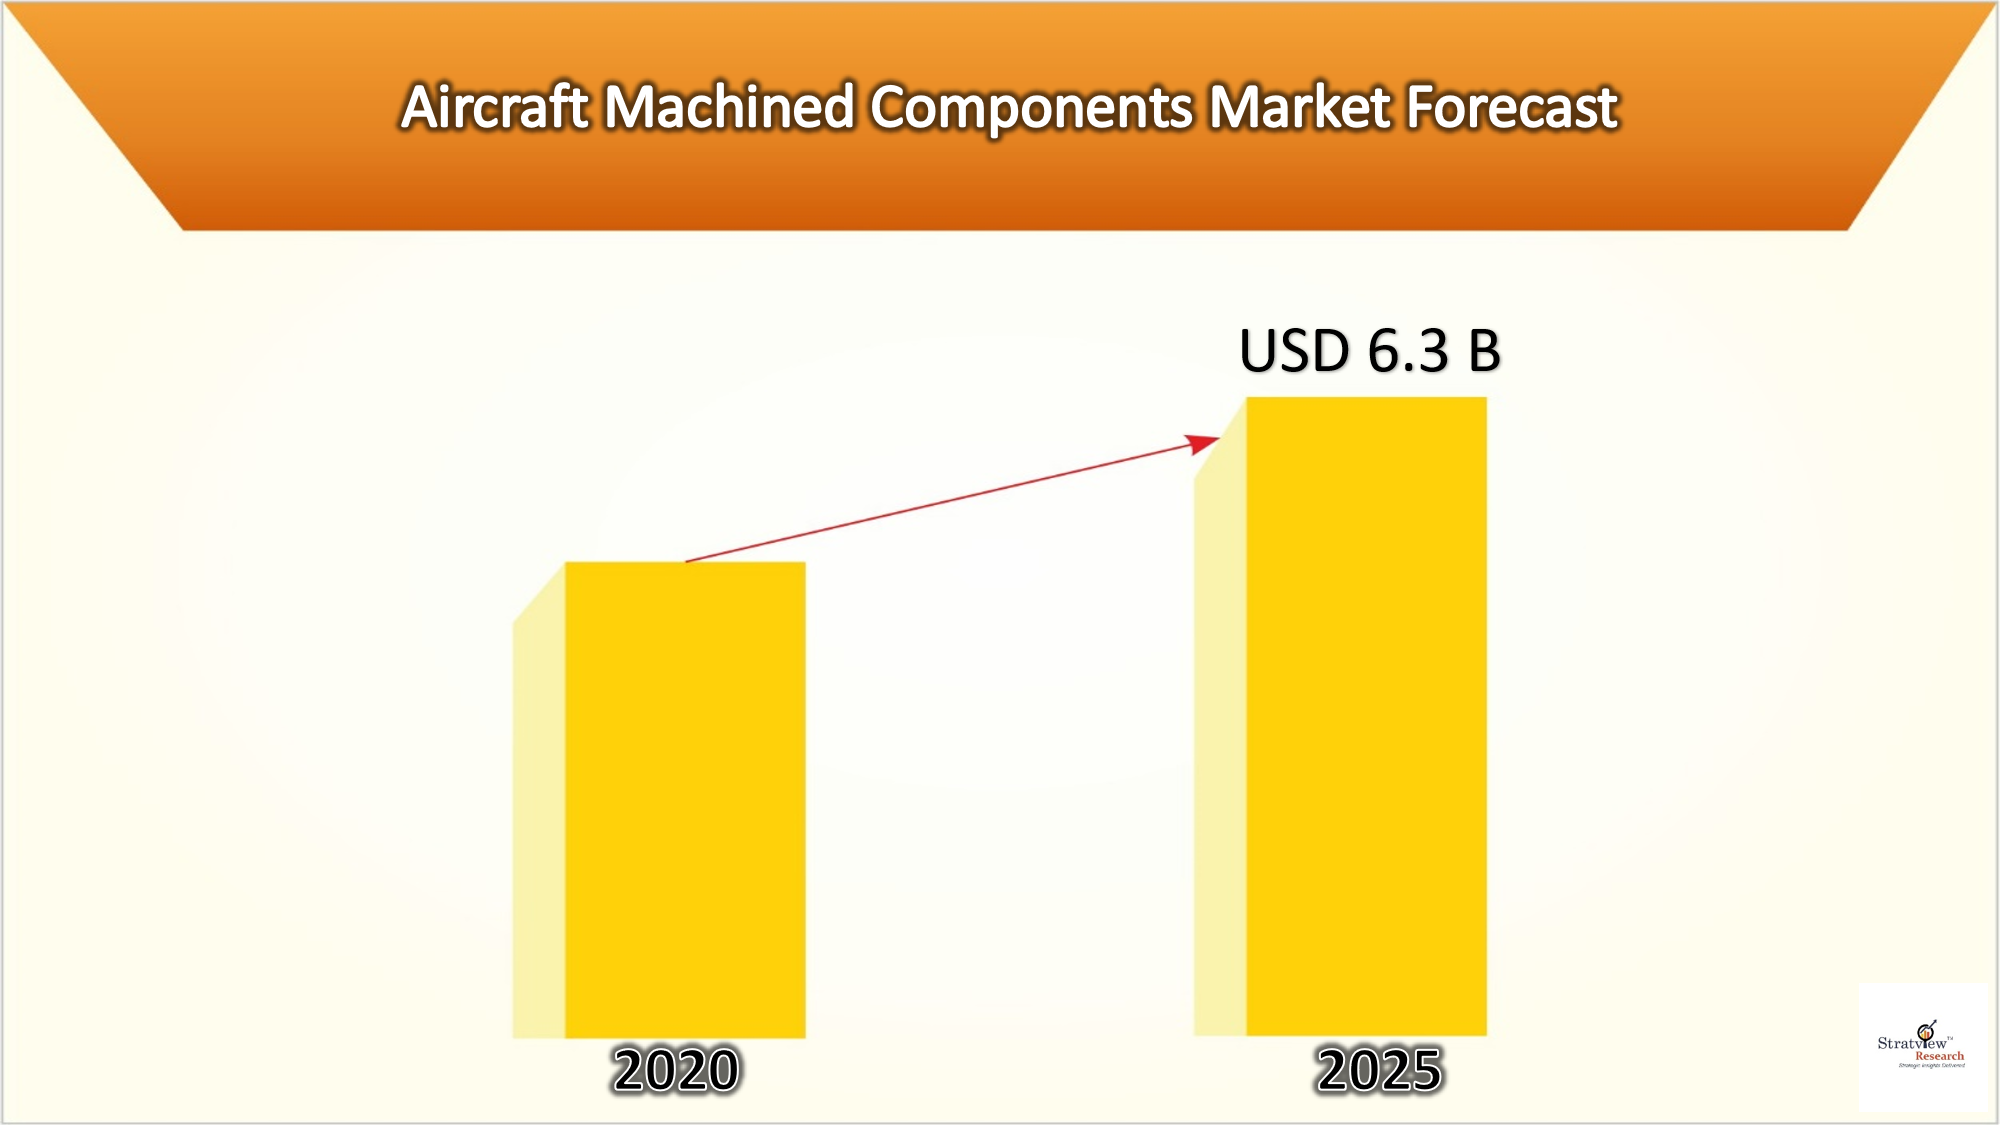 Aircraft Machined Components Market